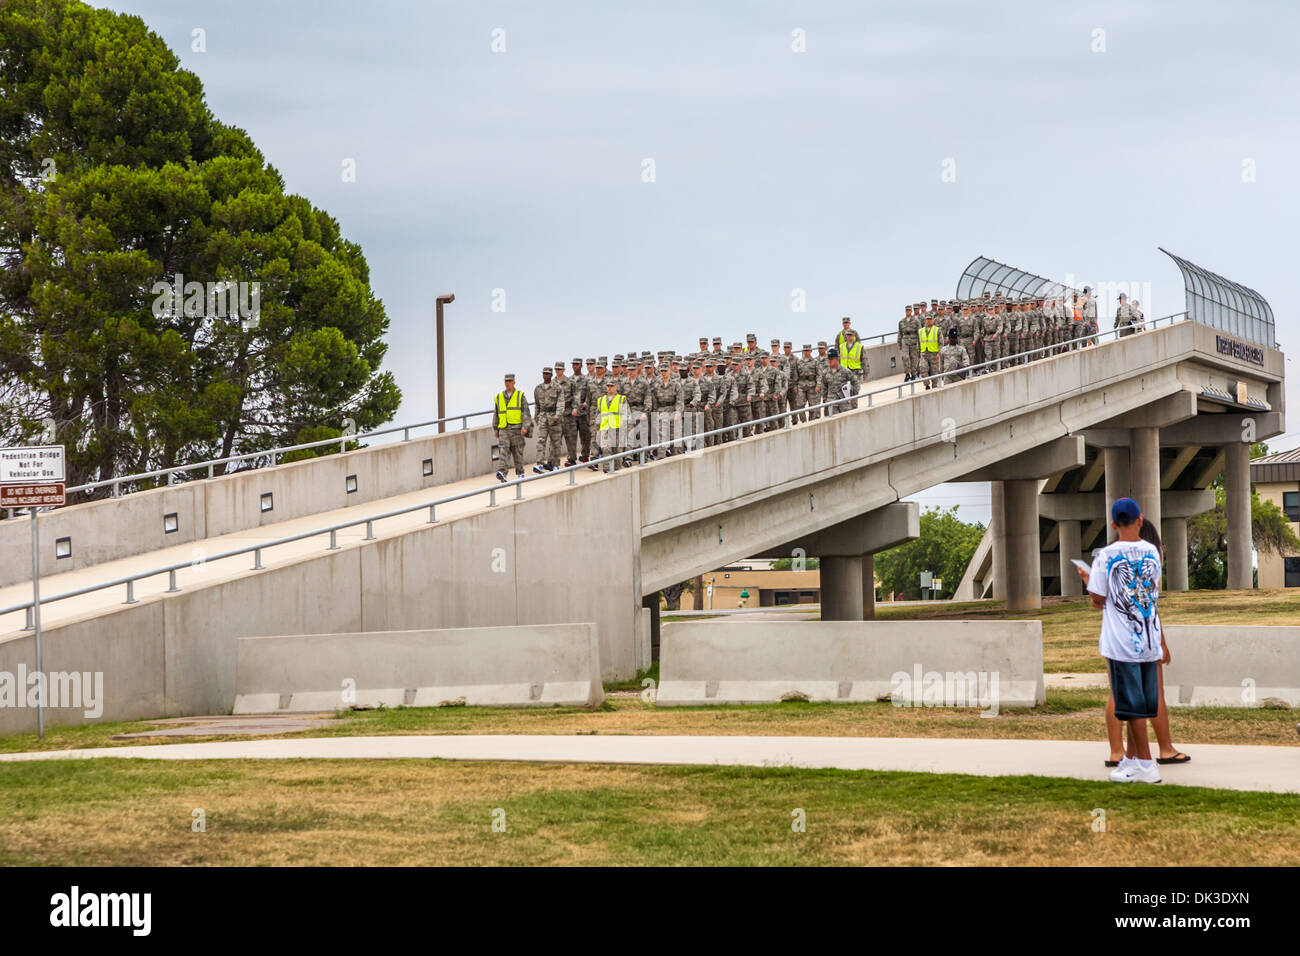 Flights of airmen marching down bridge ramp during United States Air Force basic training in San Antonio, Texas - Stock Image